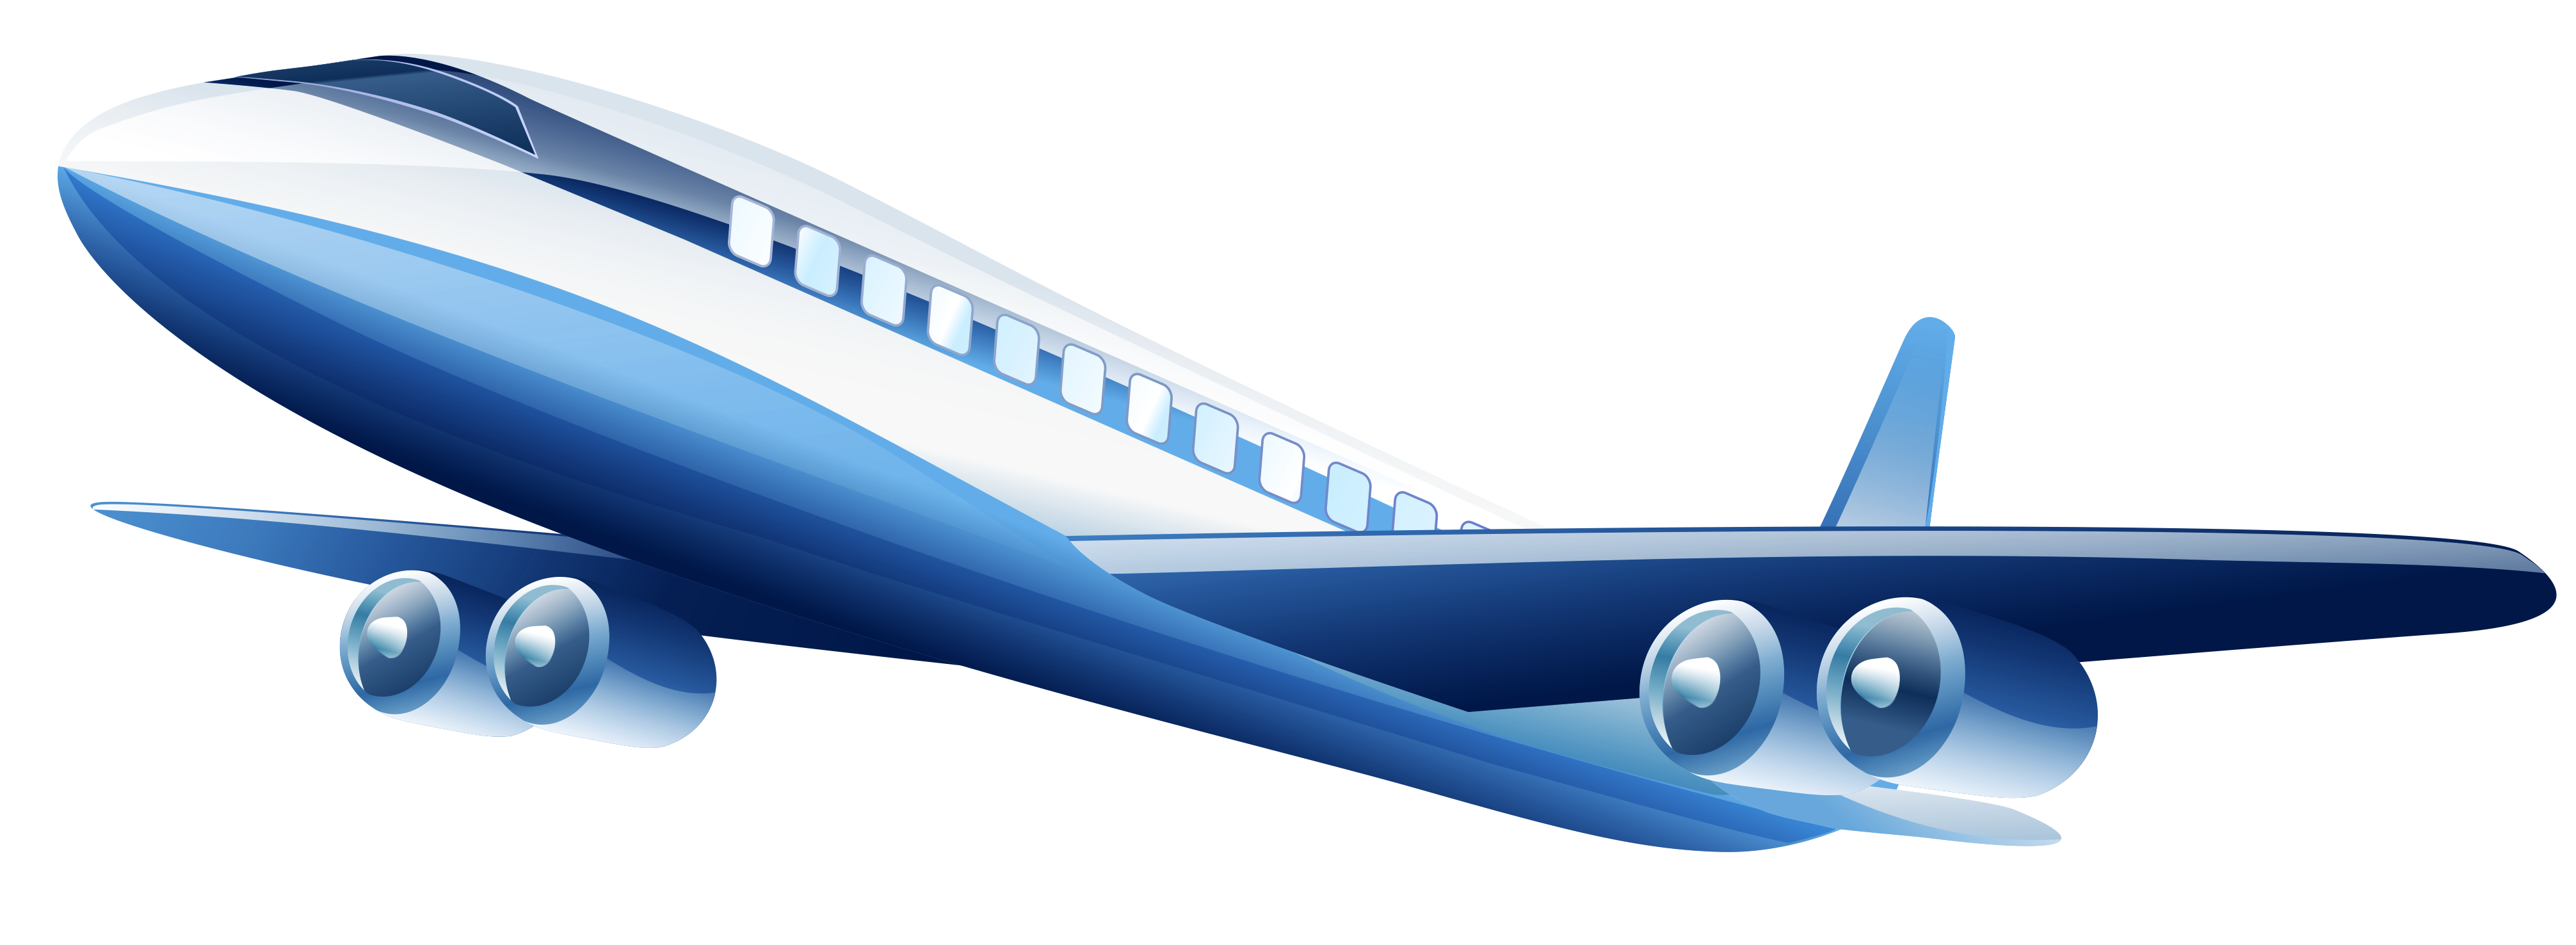 jpg freeuse library Airplane clipart. Gallery yopriceville high quality